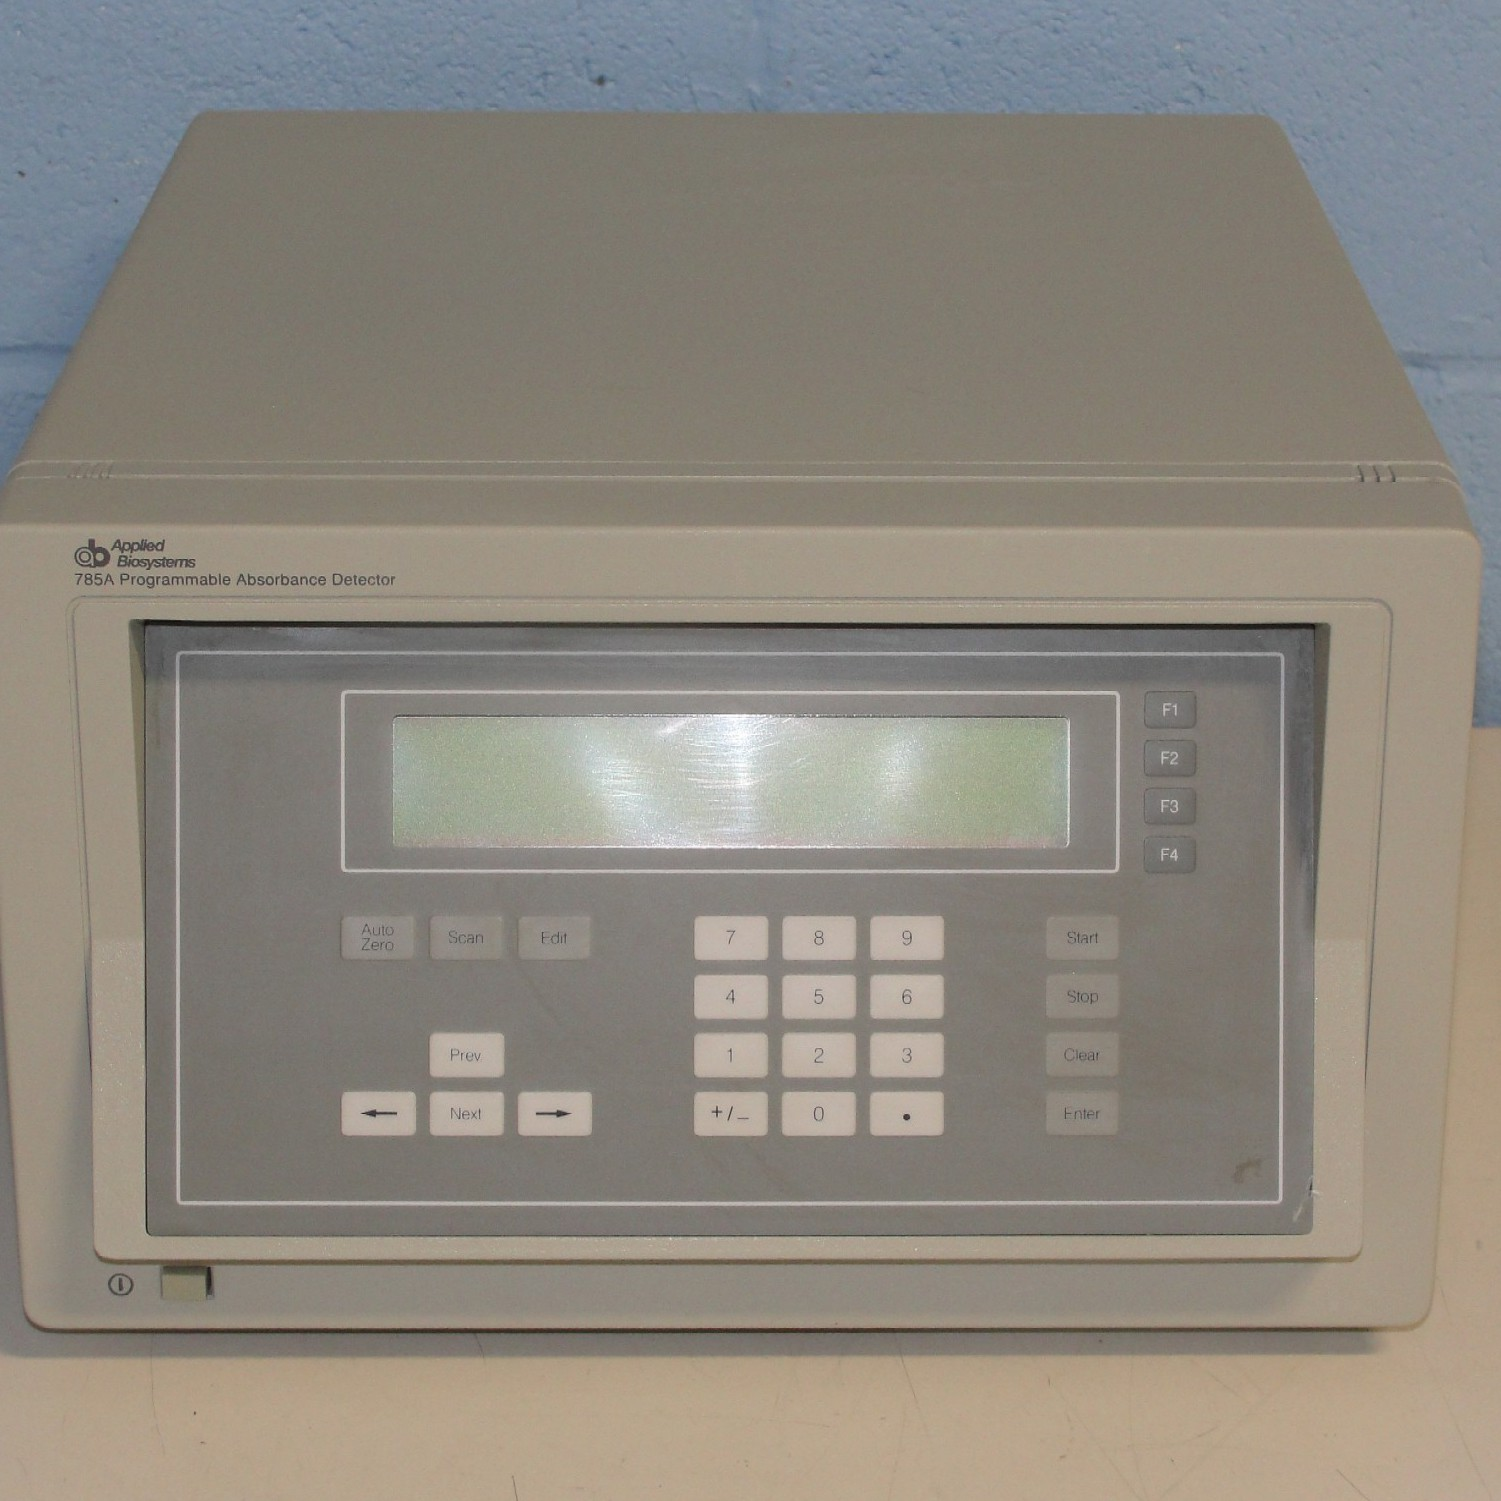 Applied Biosystems 785A Programmable Absorbance Detector Image